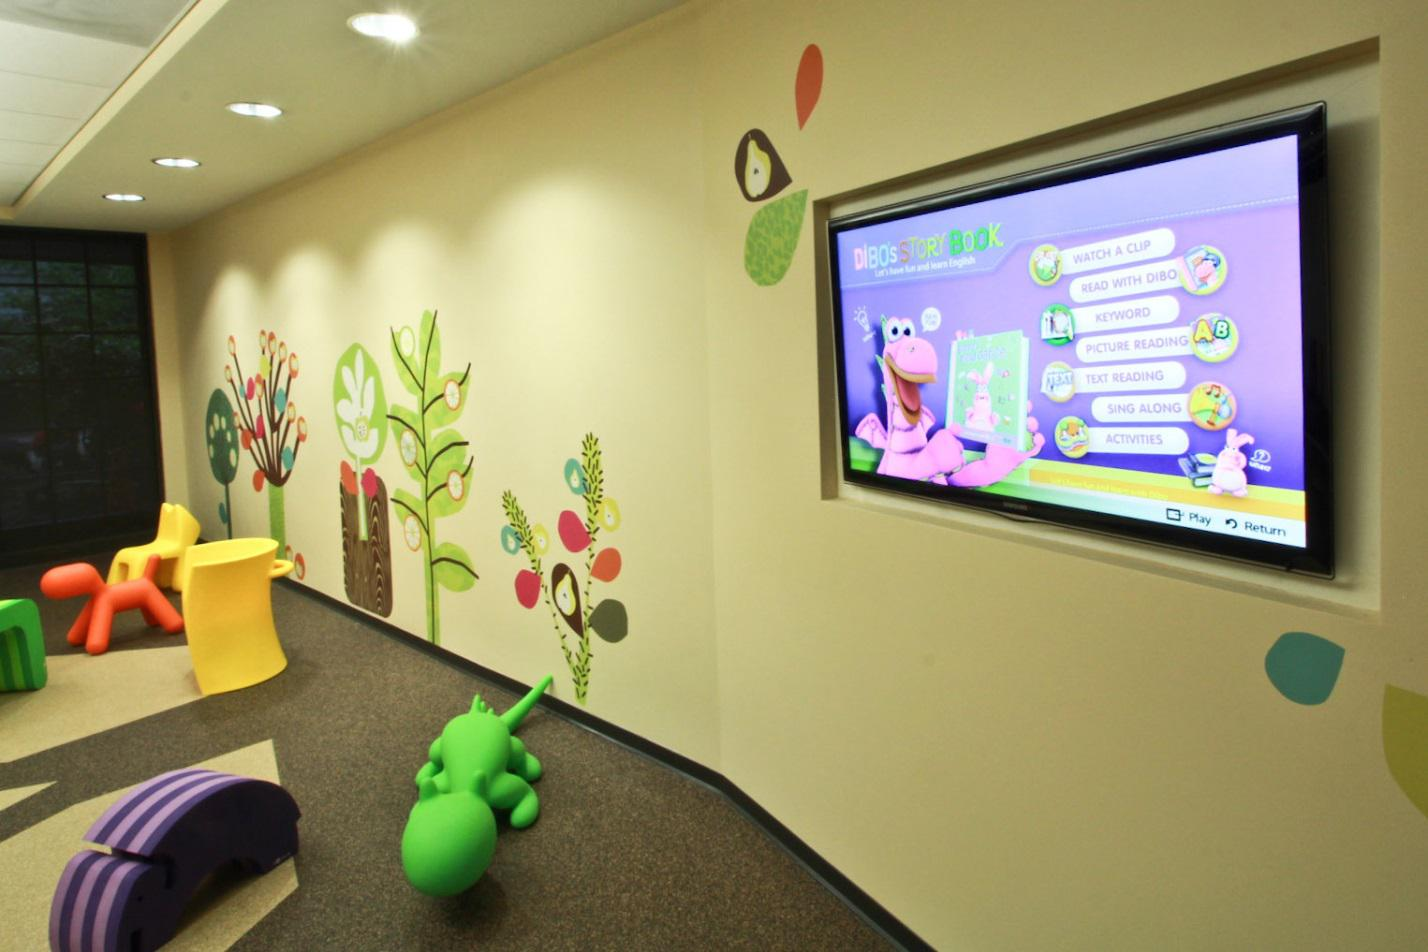 Commercial Audio Visual Systems - HD Smart TV with Interactive Apps installed by Gridworks